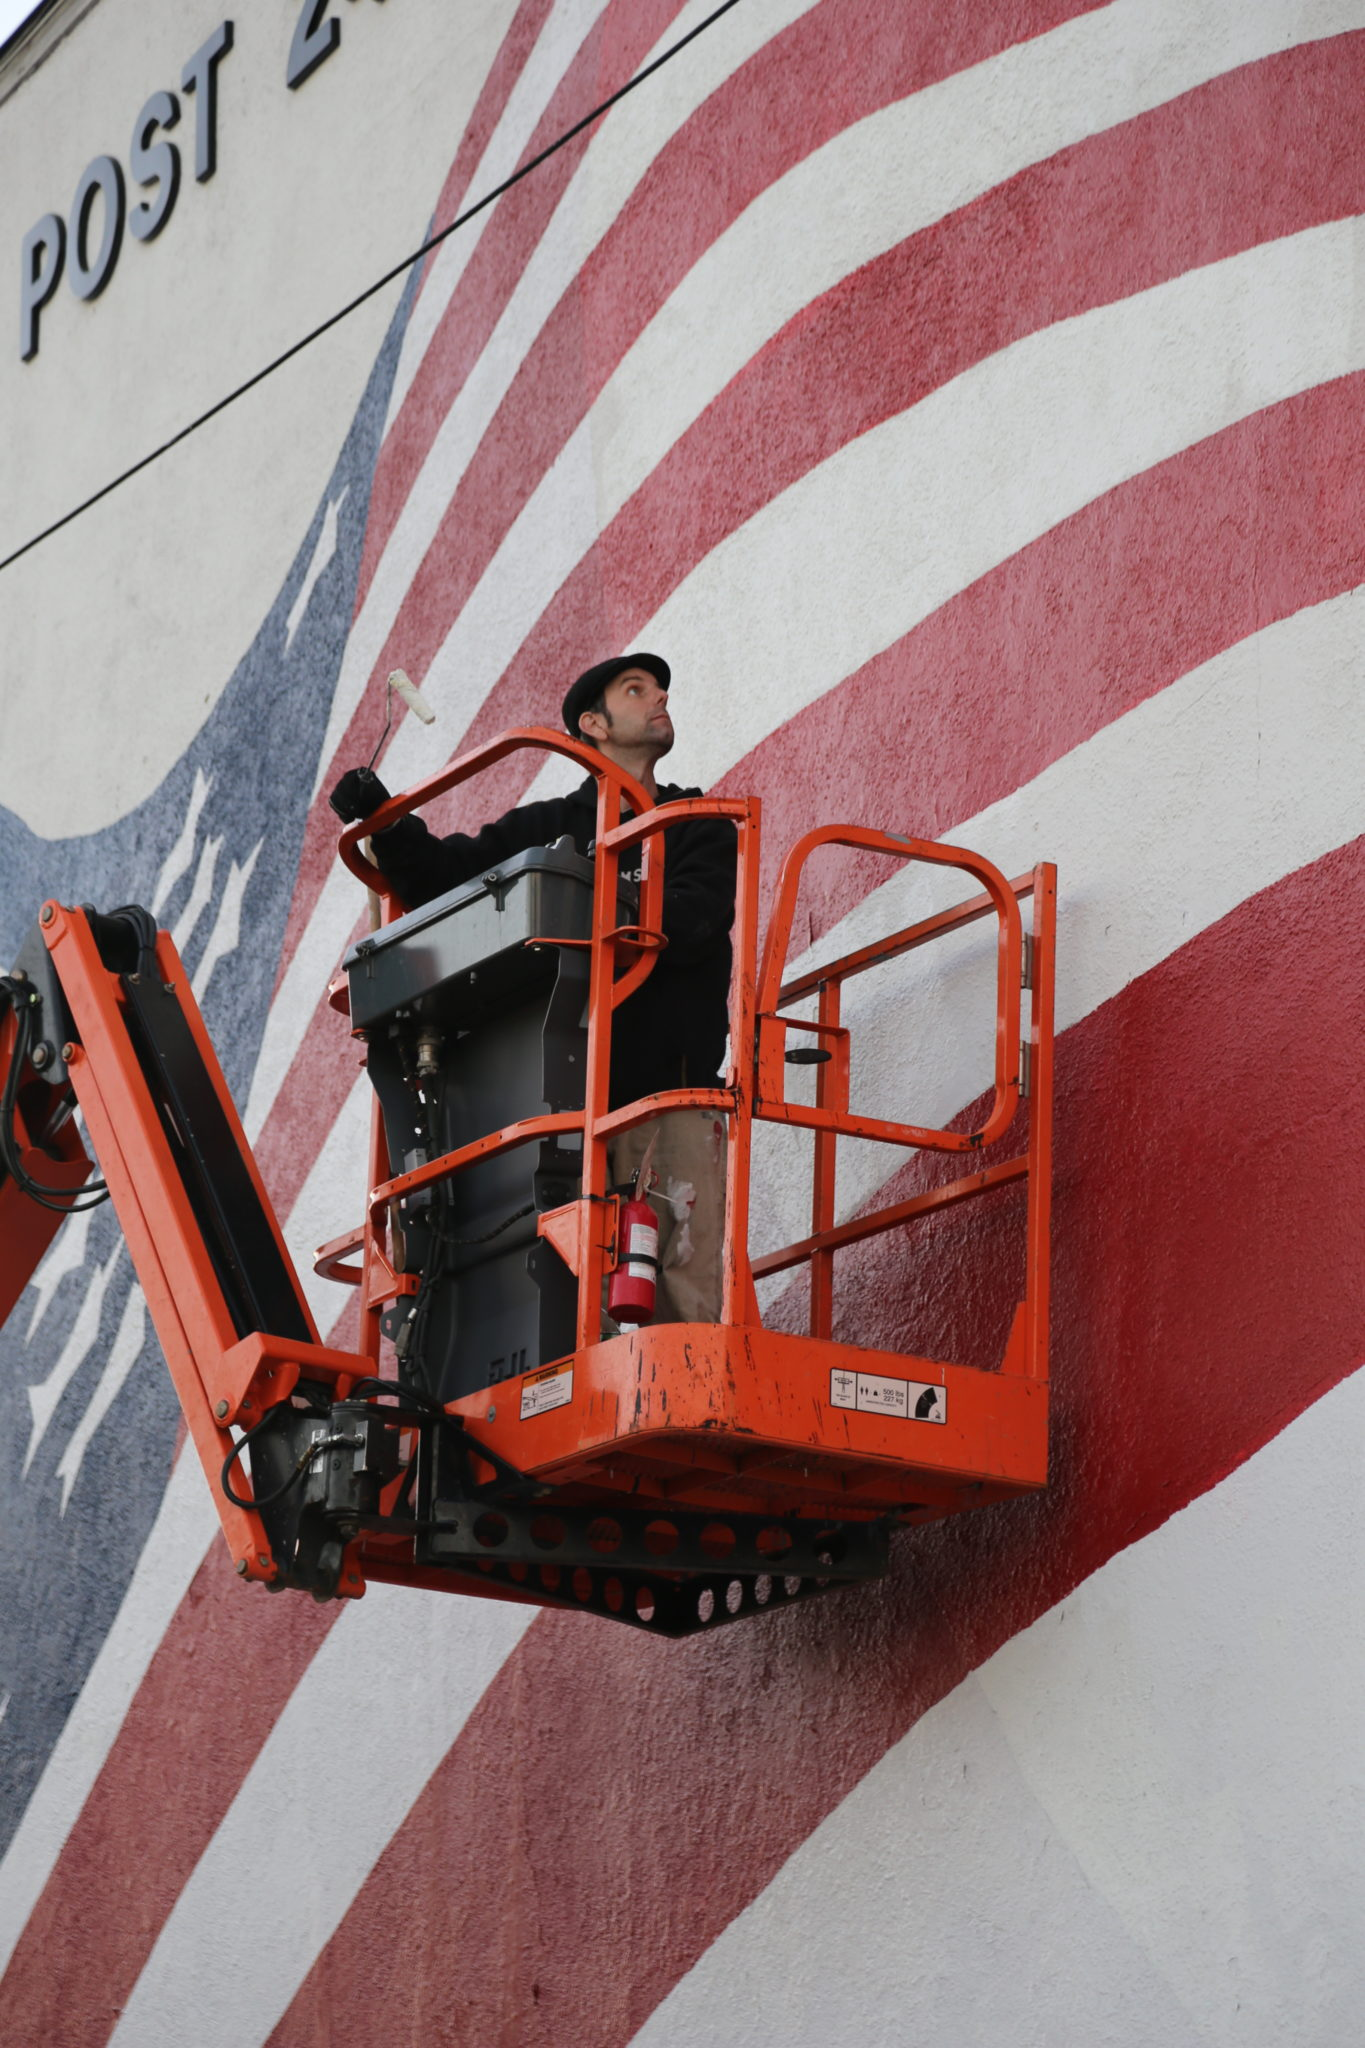 Exterior image of man on a crane painting a mural for Boonton Arts mural project